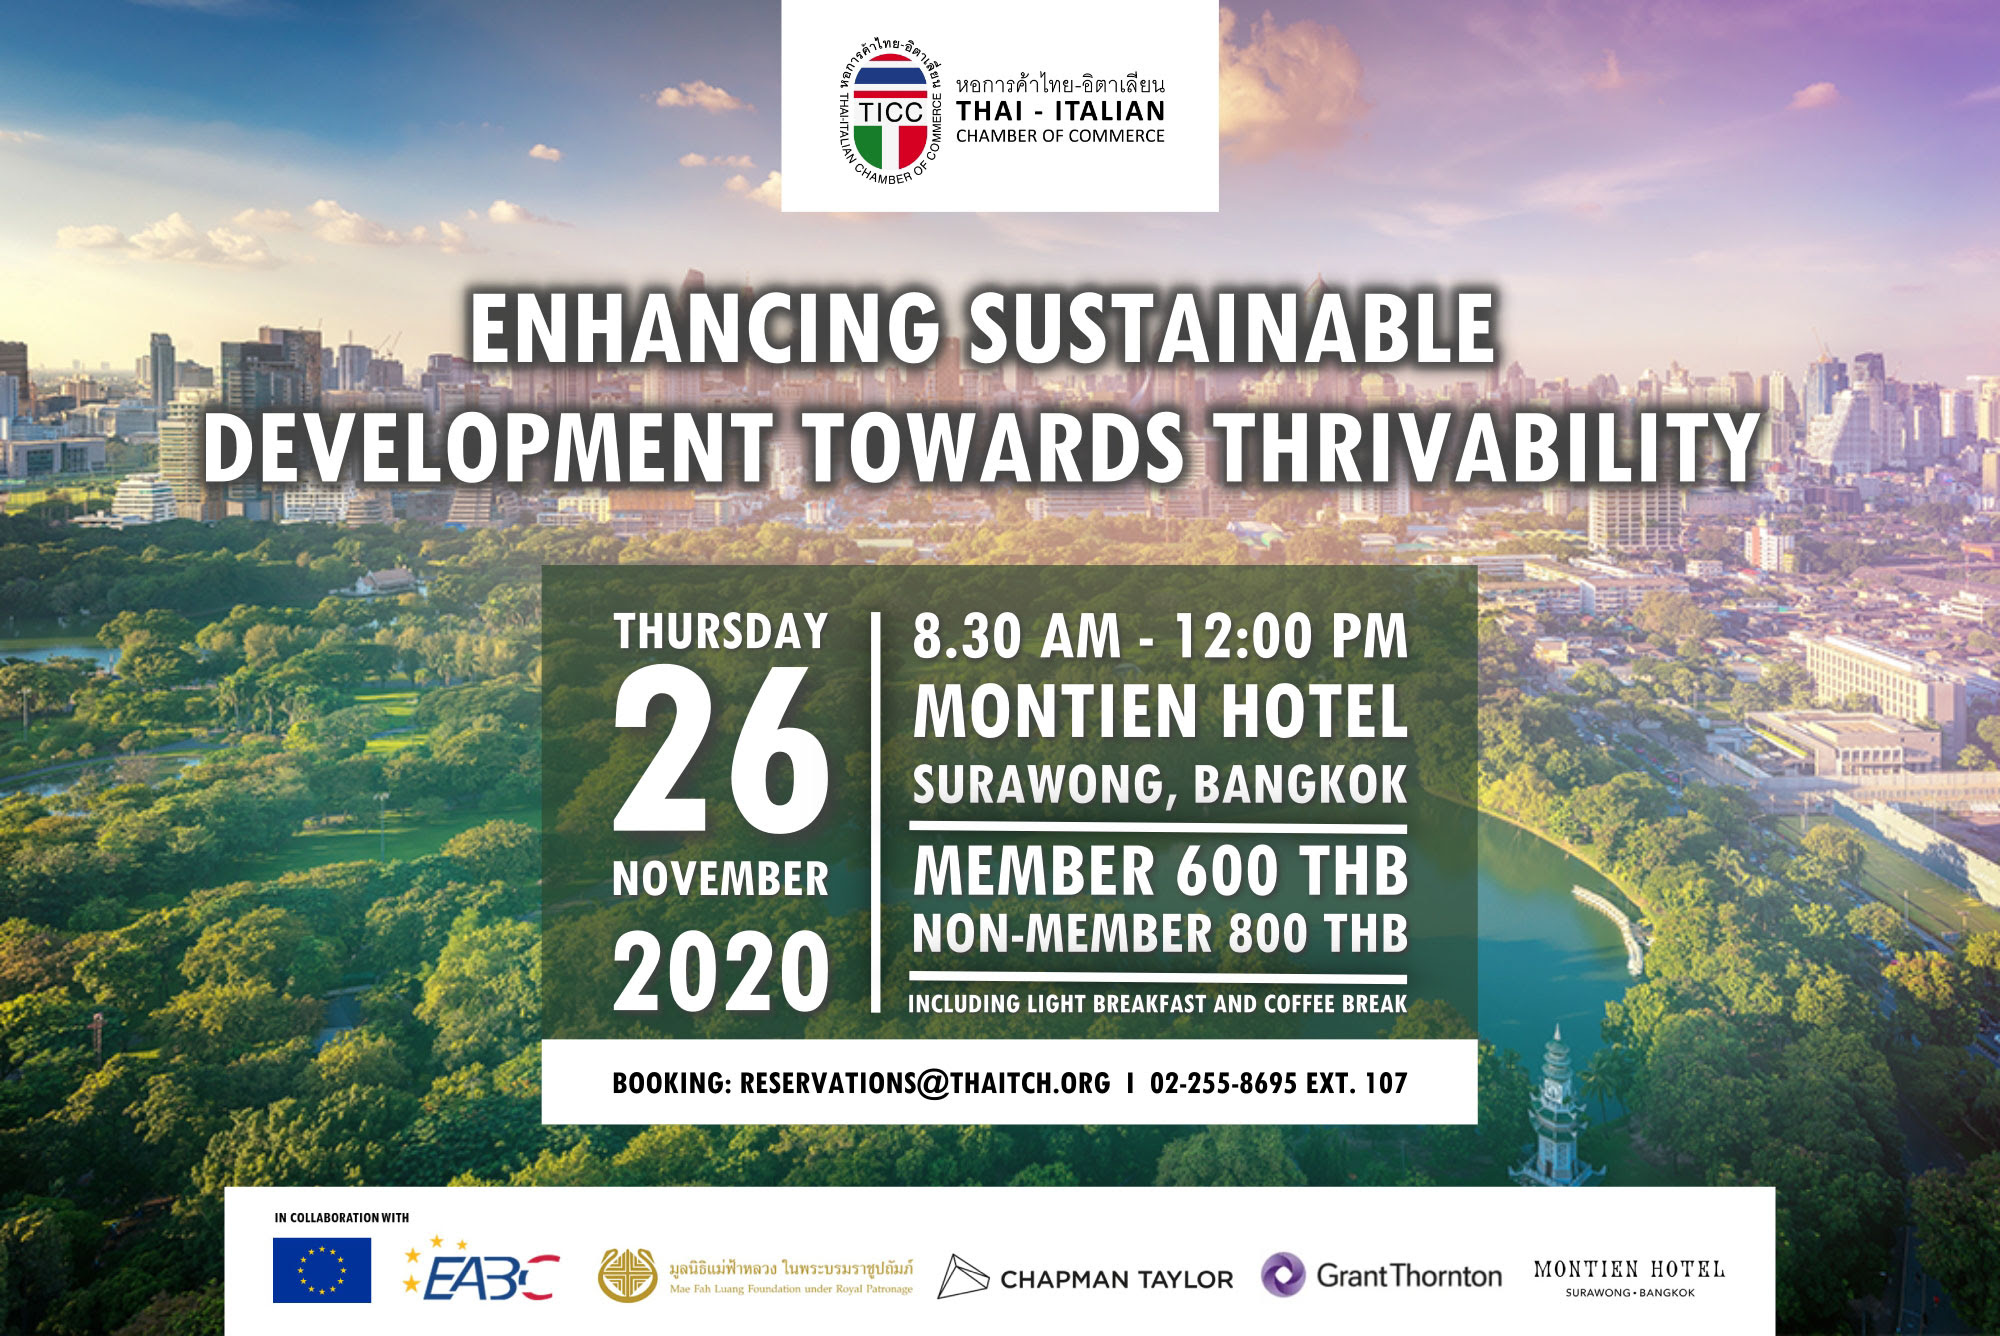 Immagine TICC Seminar: Enhancing Sustainable Development Towards Thrivability // 26 November 2020 at The Montien Hotel Bangkok, Surawong